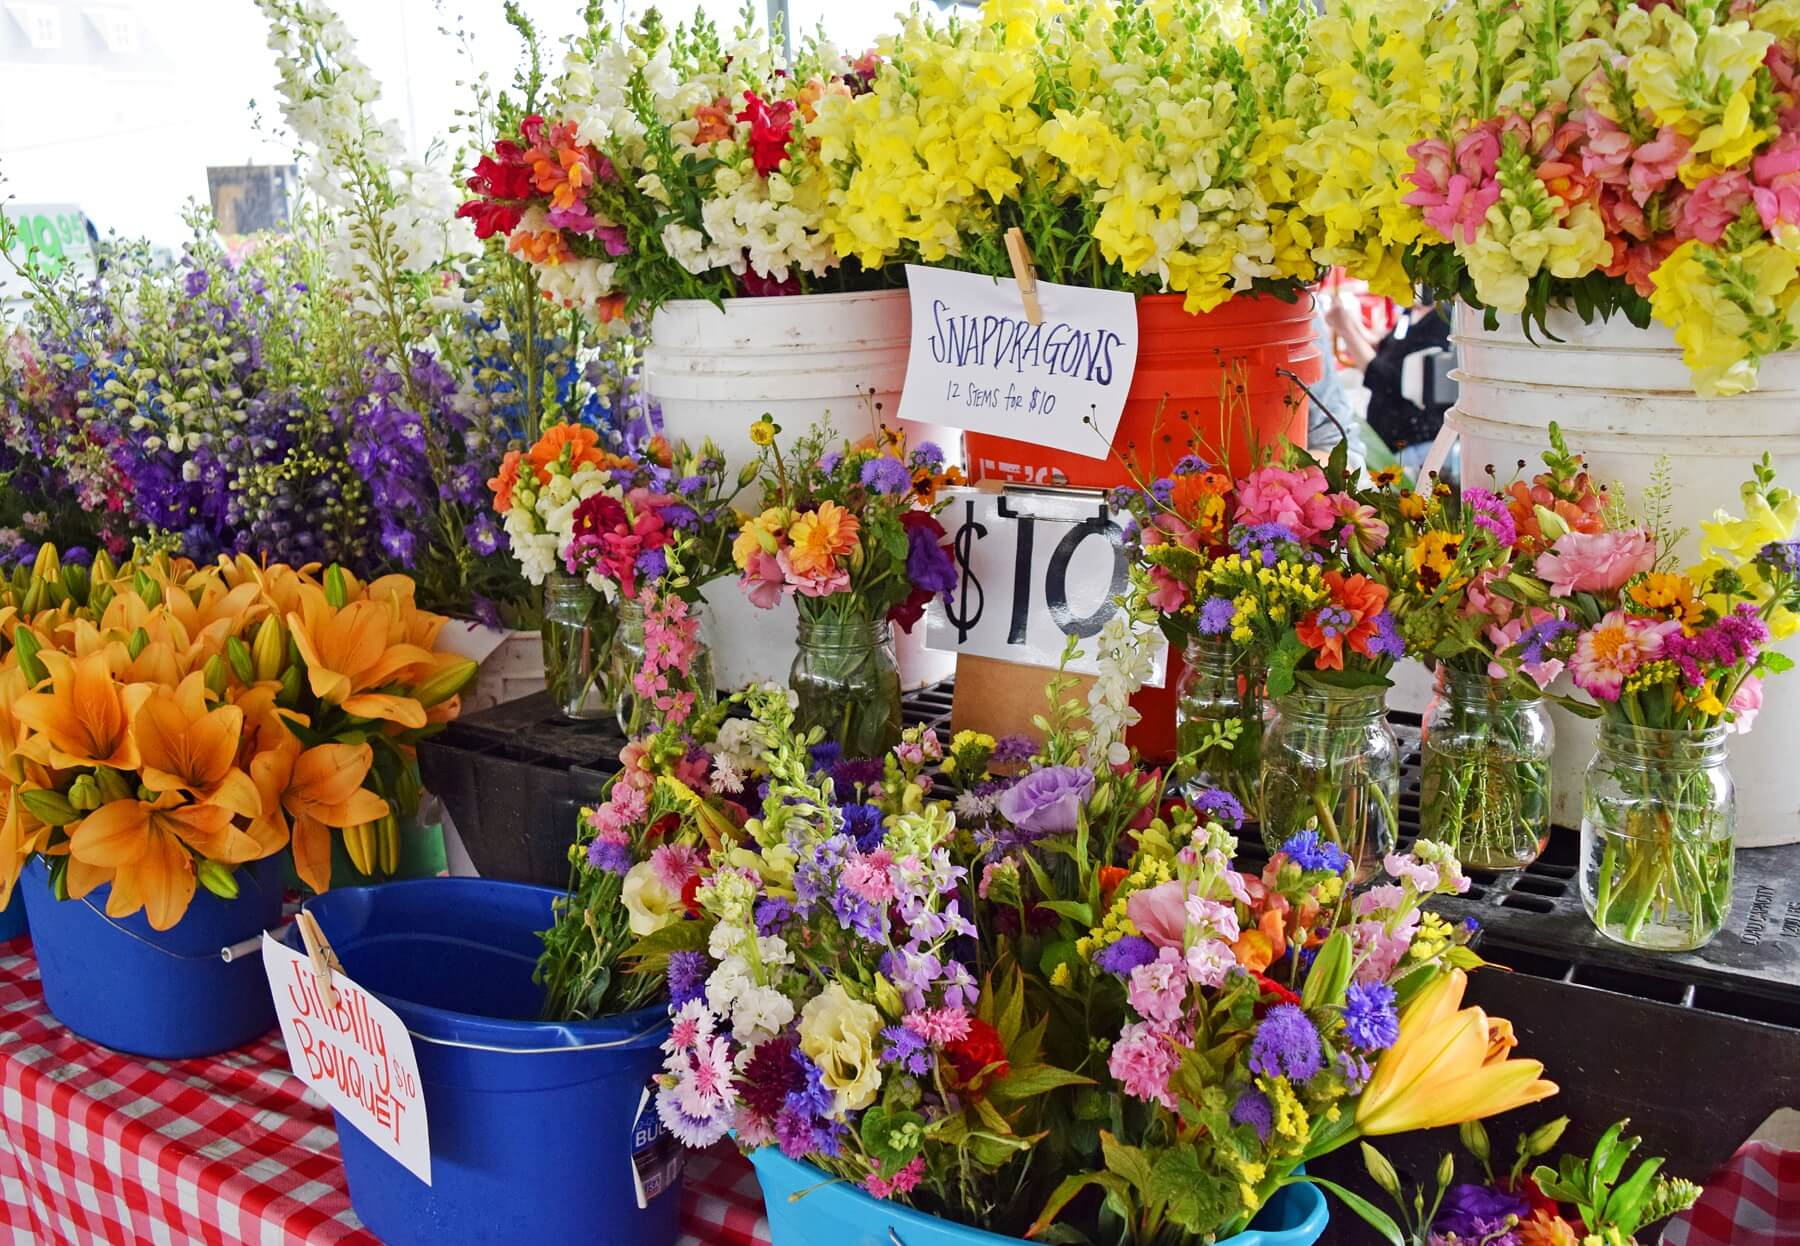 Find your favorite Whitton Farms flower arrangement, starting at $10, at the Memphis Farmers Market.